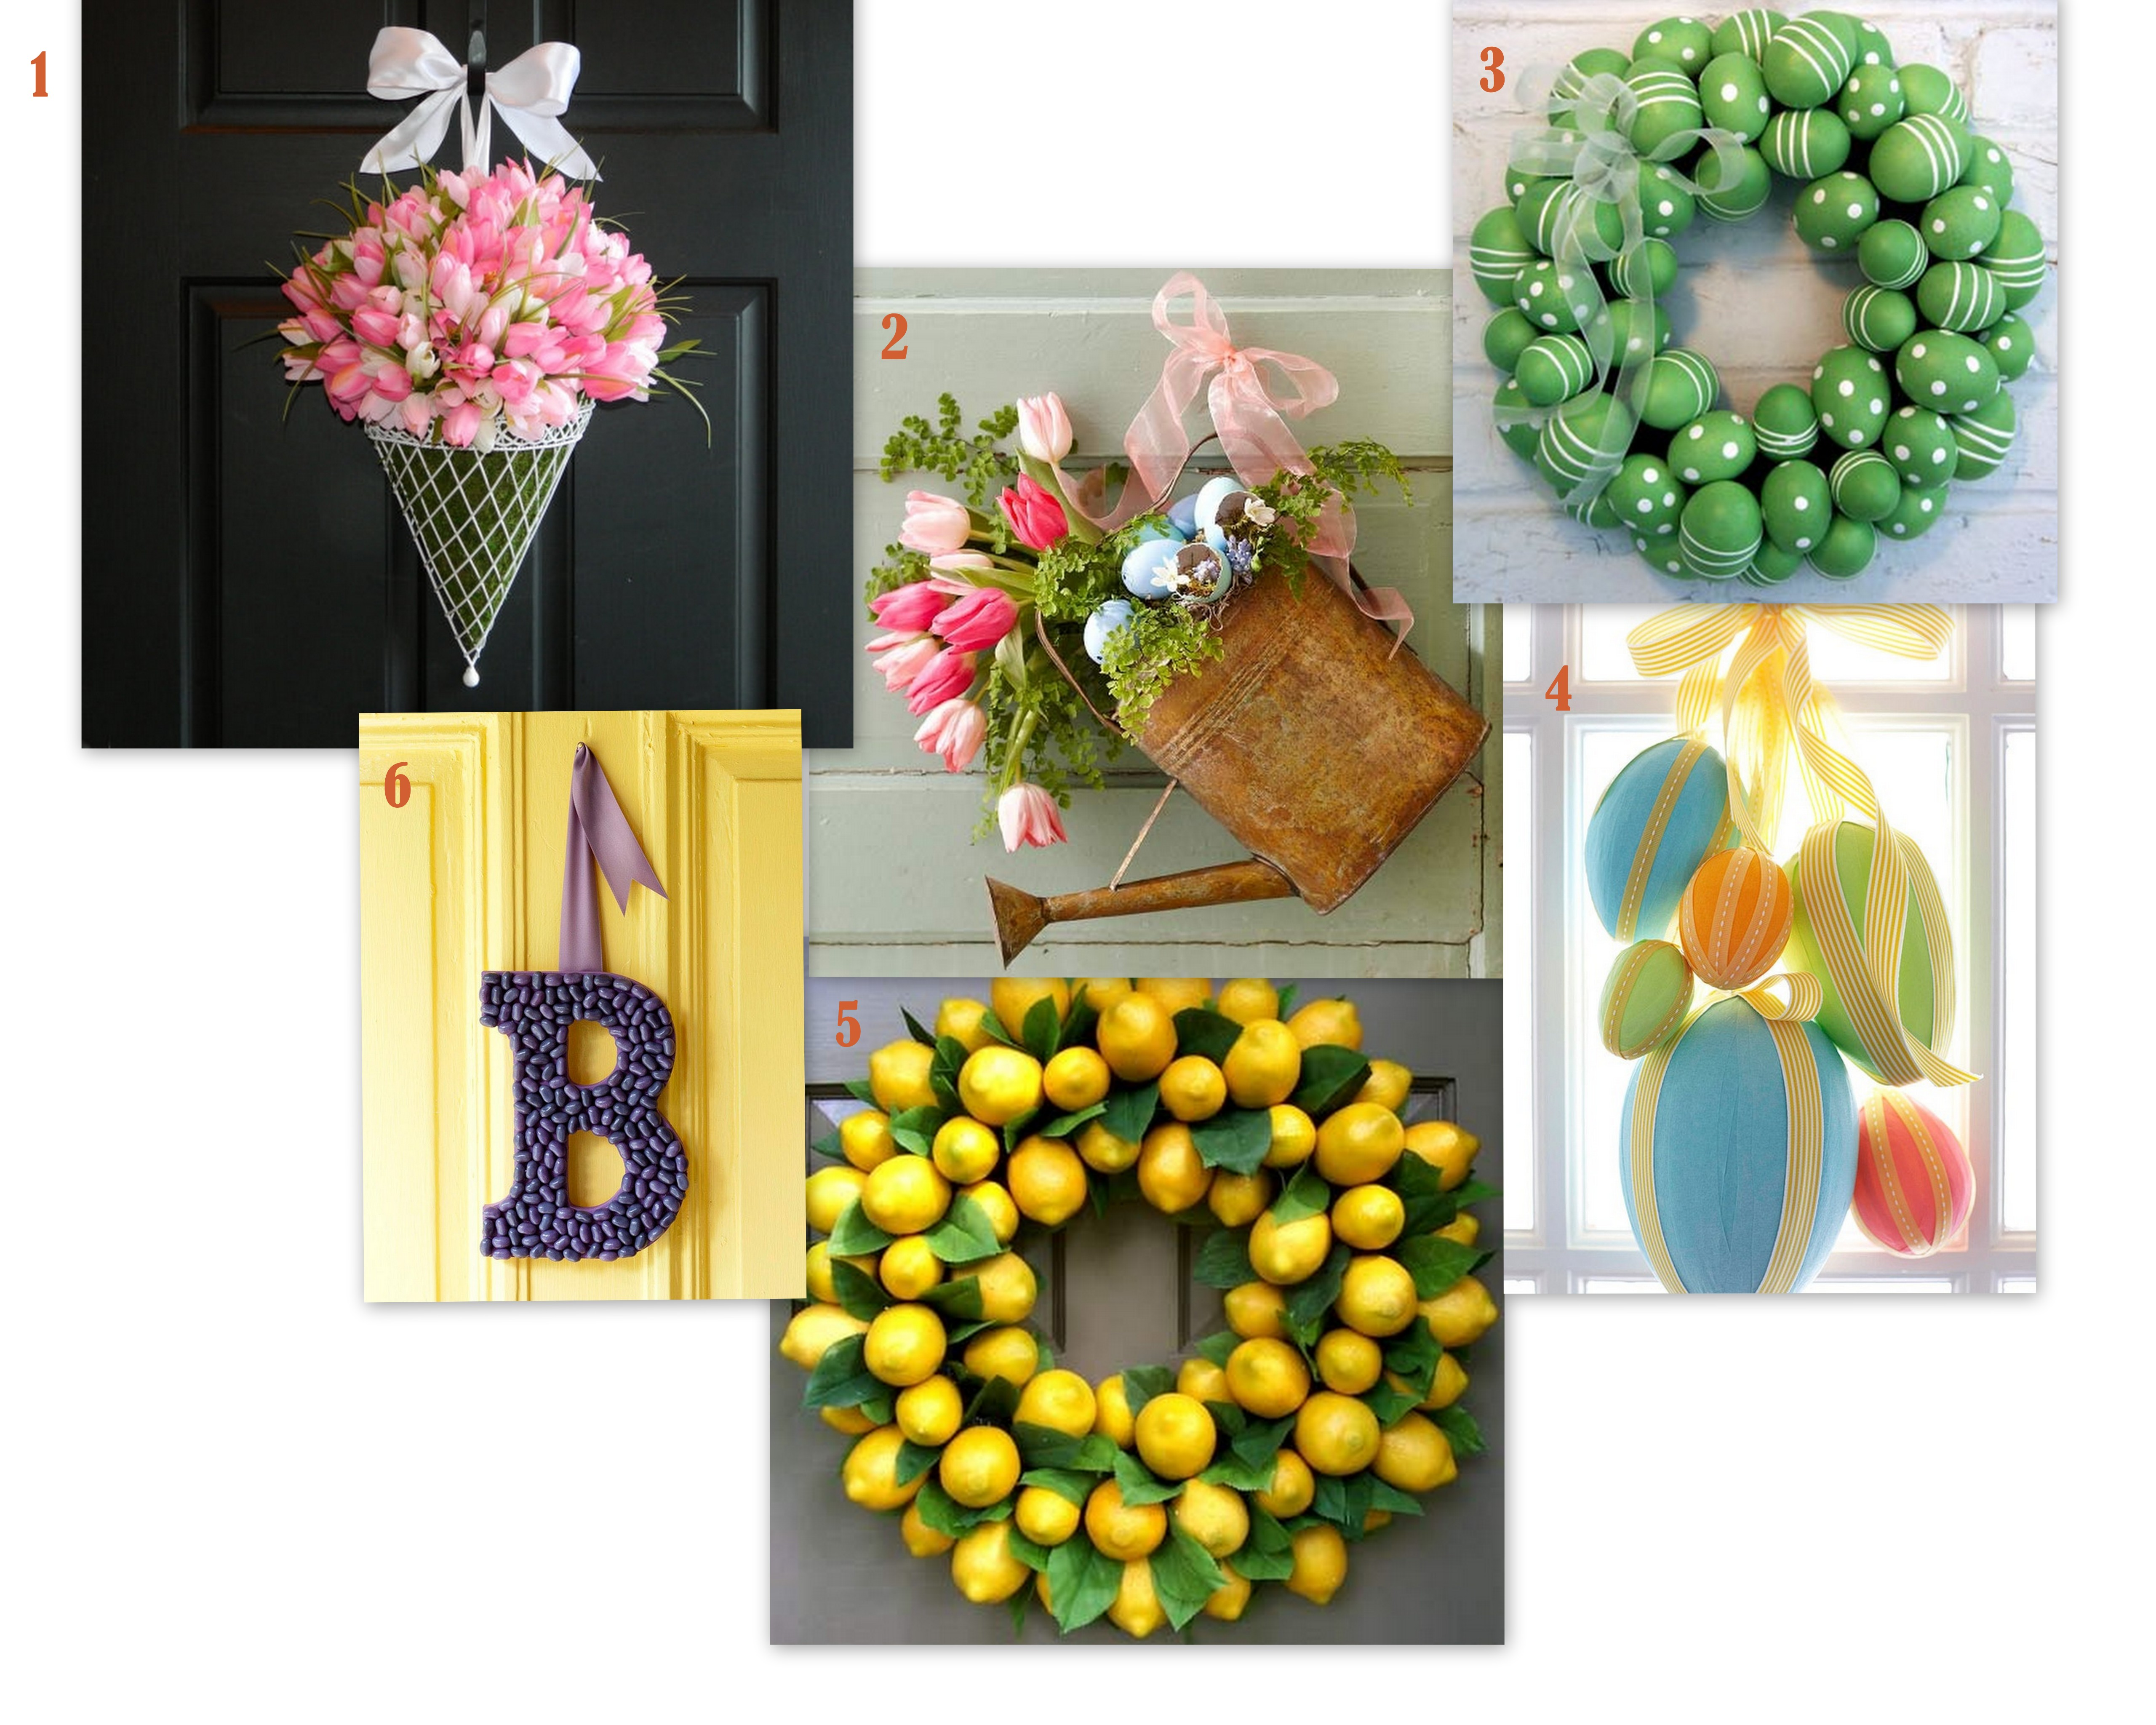 Spring window decorations images frompo 1 - Window decorations for spring ...